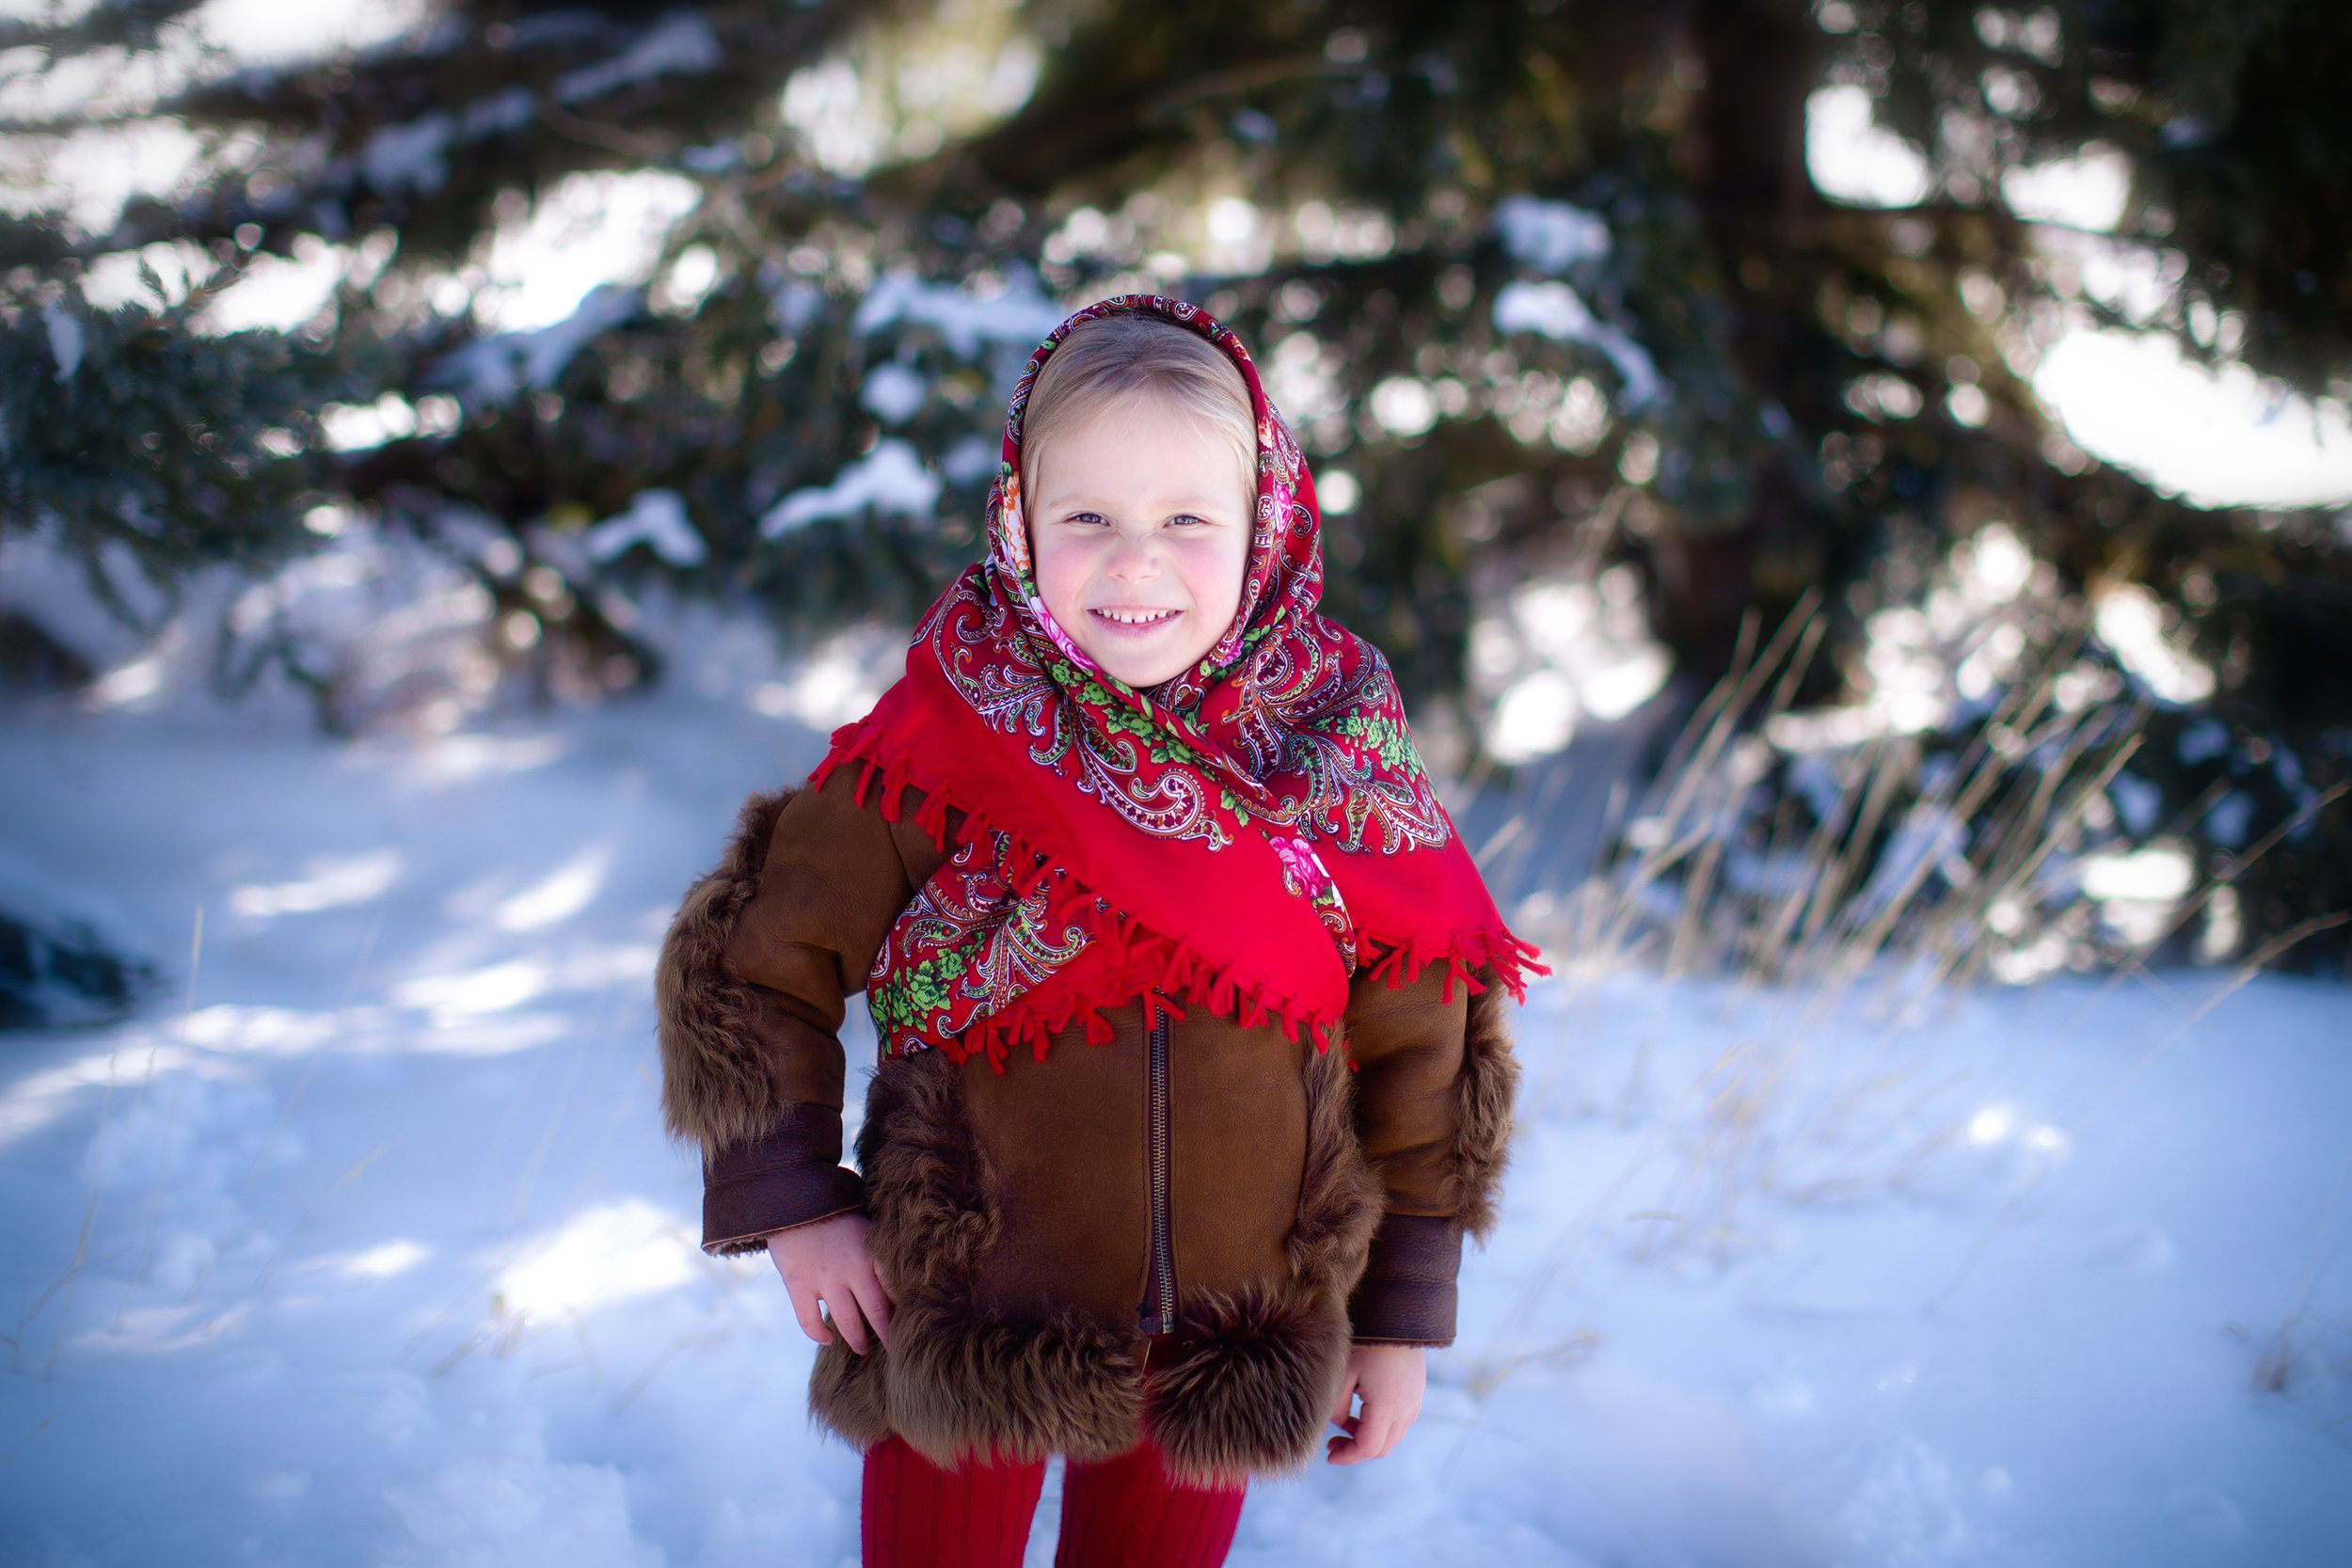 Russian Girl. A little girl dressed in traditional Russian clothing during winter. Calgary Child photographer - Milashka Photography